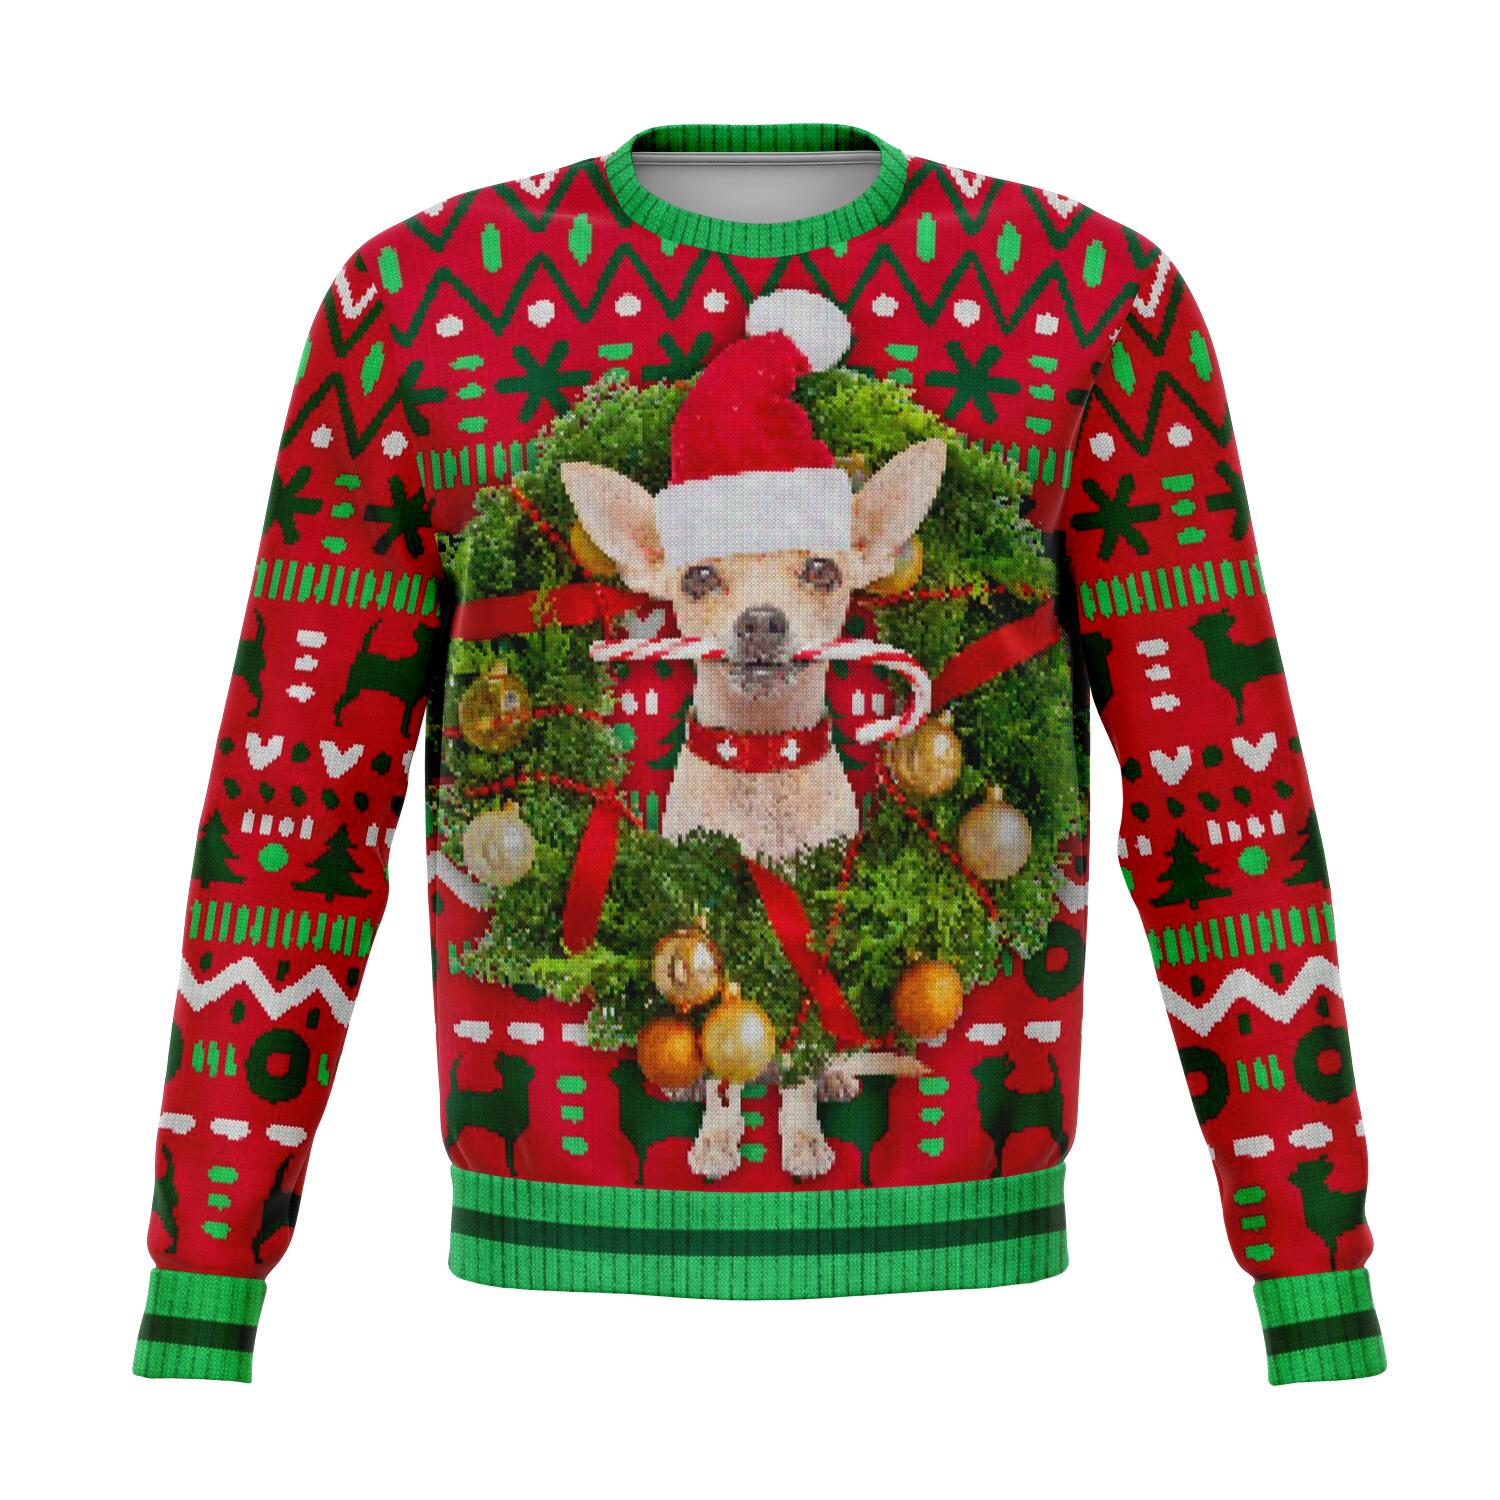 Chihuahua Dog Ugly Christmas Sweater, wreath Sweatshirt Xmas Holiday Party Funny Men Women Tree Snowflakes Red Green Plus Size - Starcove Design